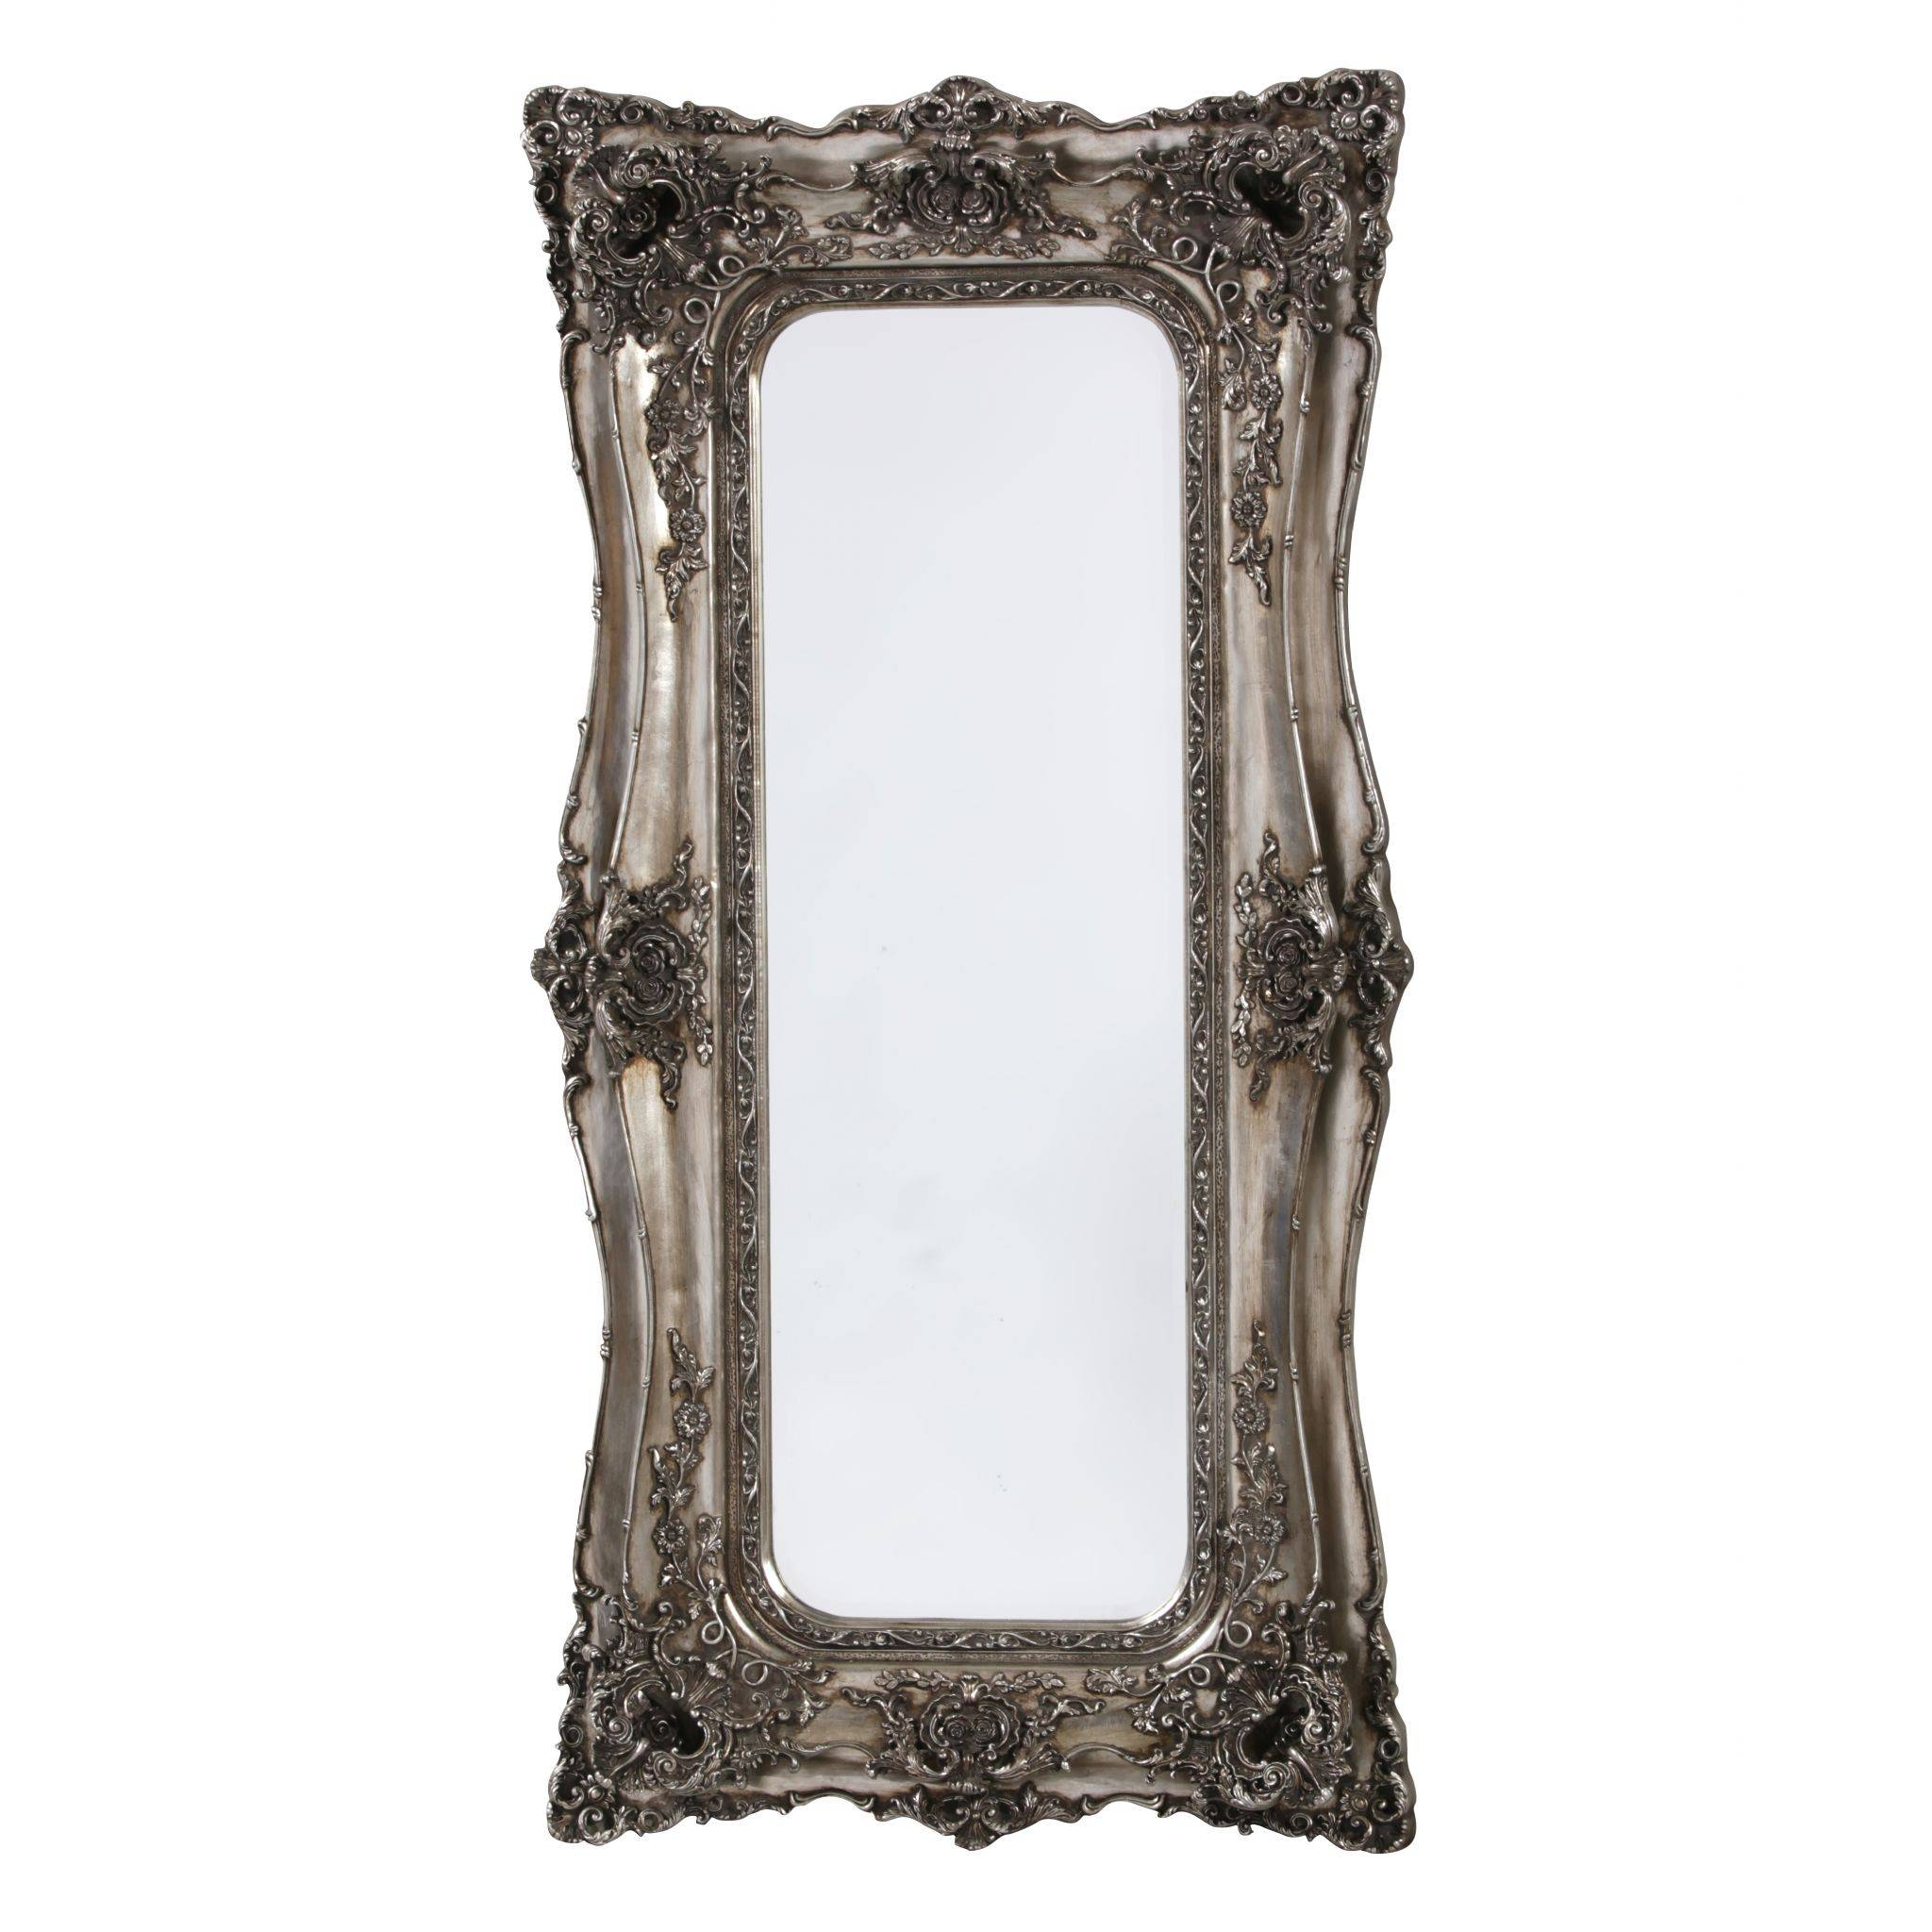 French Mirrors | Fancy Mirrors | Large Mirrors | Decorative intended for Fancy Mirrors (Image 7 of 15)